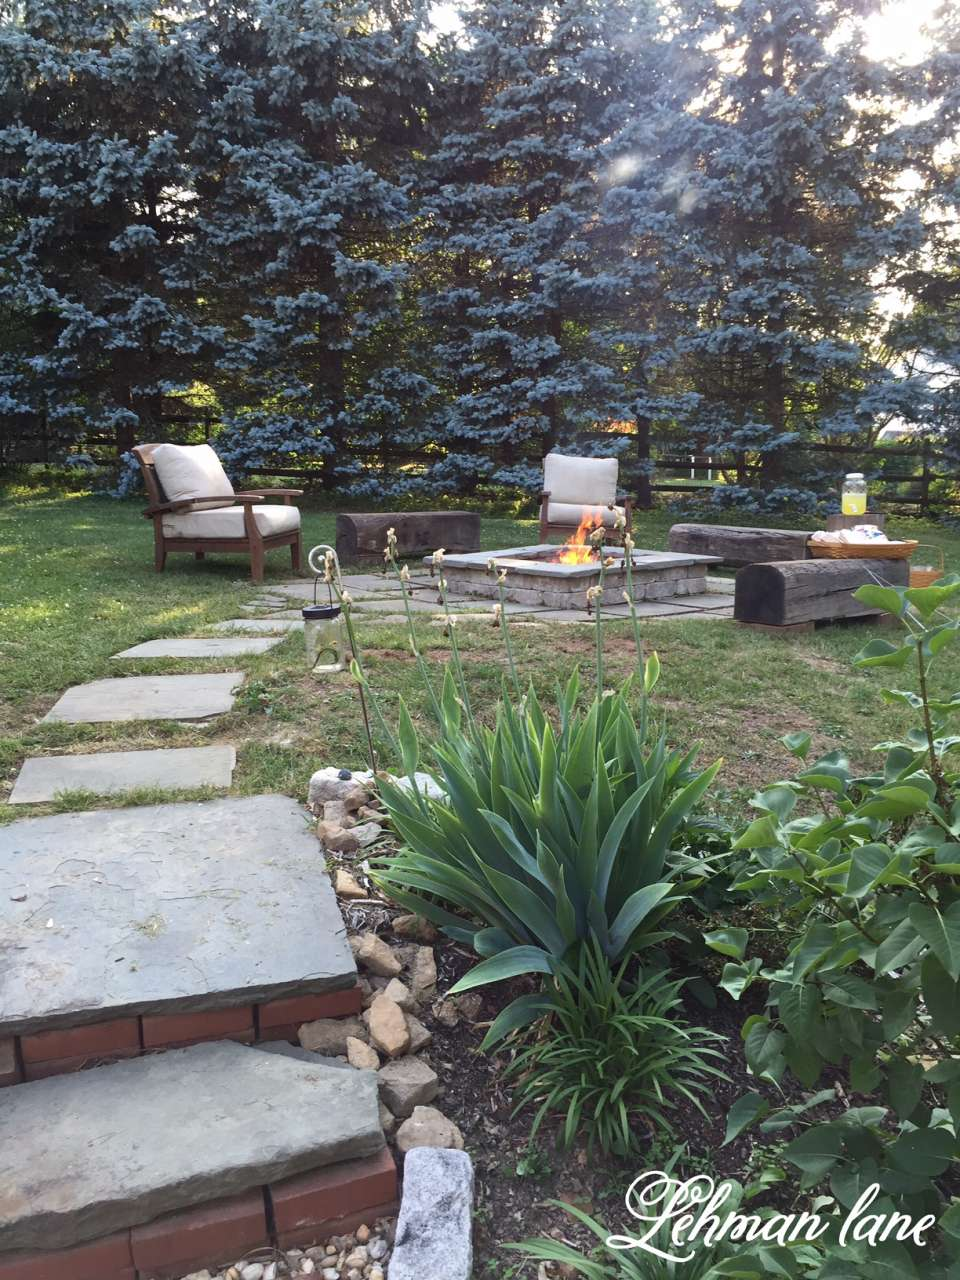 Tremendous Stone Patio Diy Fire Pit Wood Beam Benches Lehman Lane Frankydiablos Diy Chair Ideas Frankydiabloscom